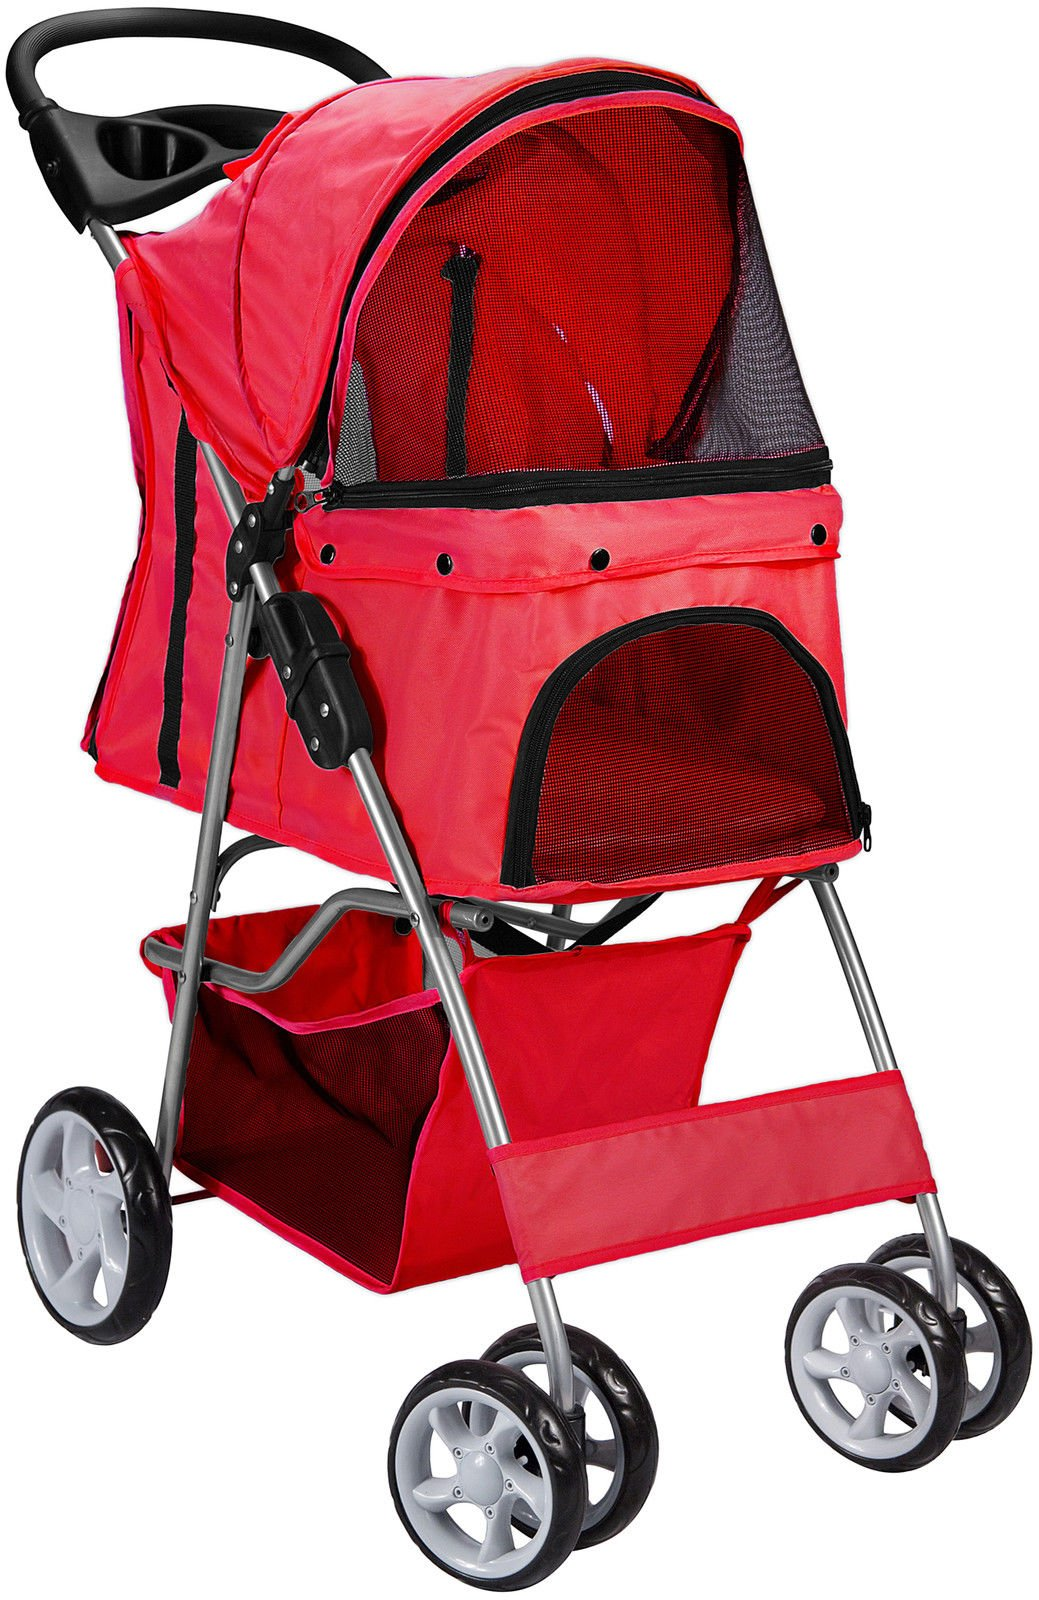 Pet Stroller Cat Dog 4 Wheeler Walk Stroller Travel Folding Carrier Red